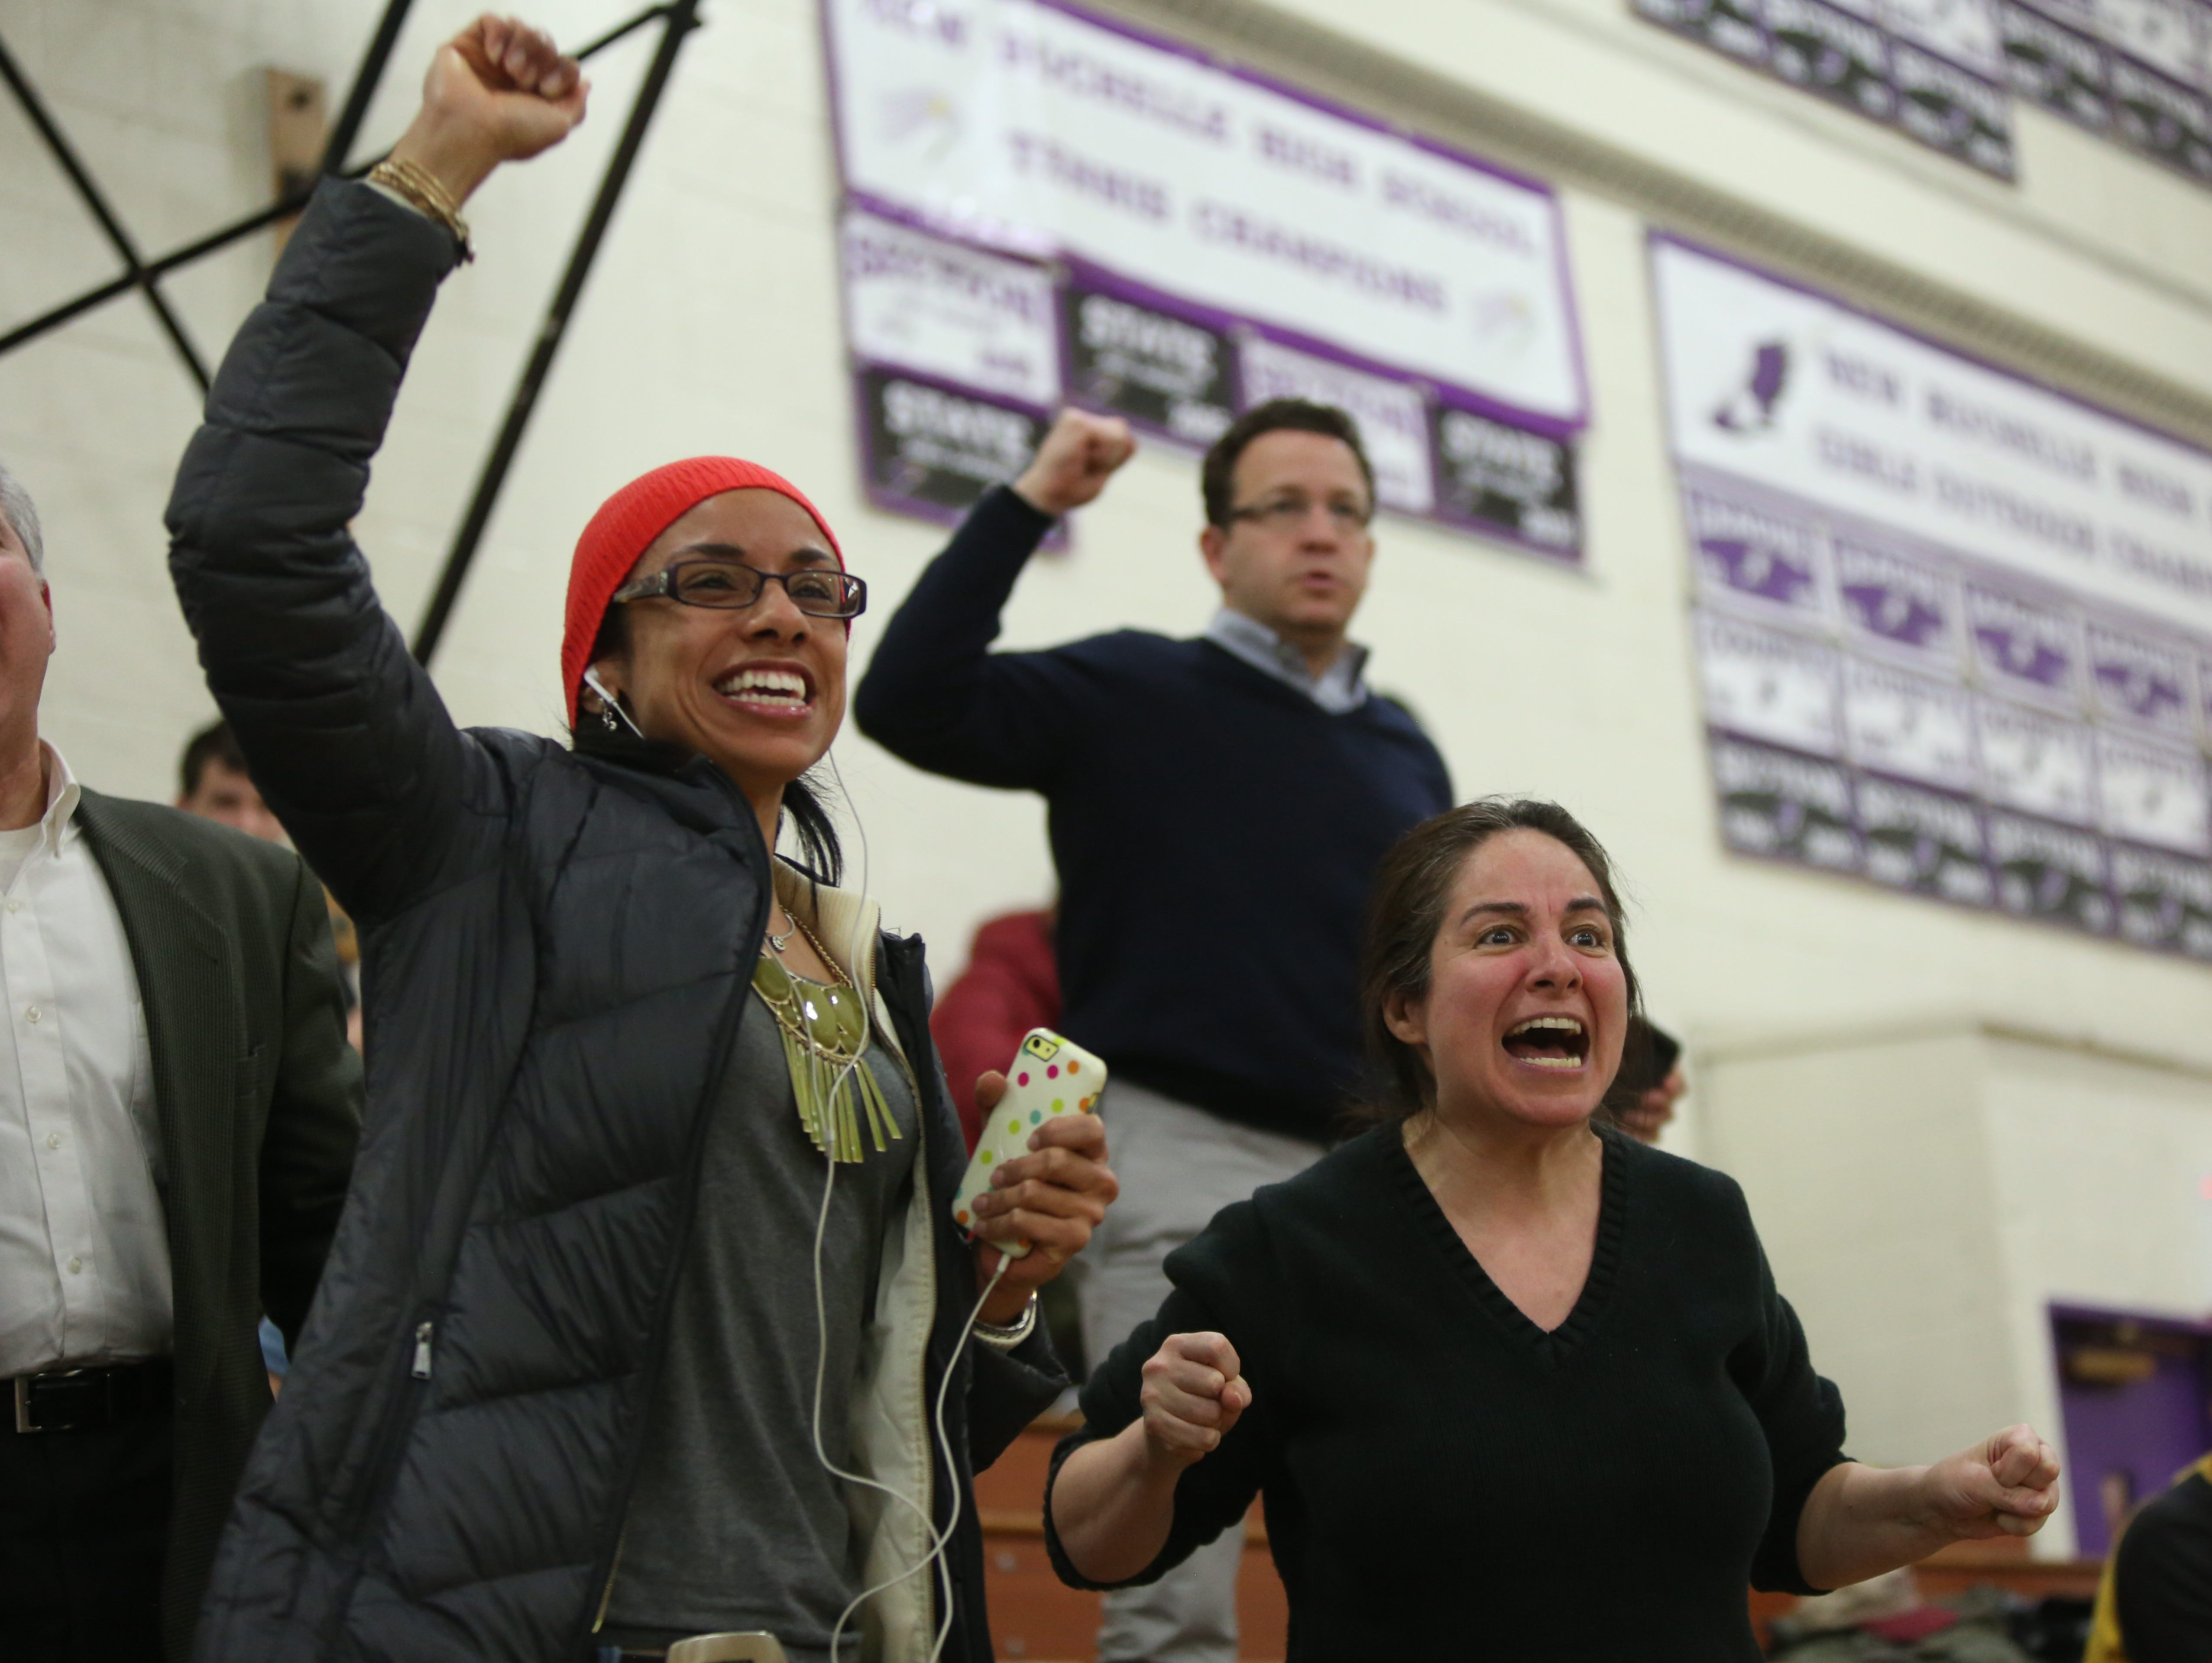 New Rochelle parents Latisha Burgos-Wallace, left, and Hope Tera, right, cheer the boys wrestling team during a match against Yonkers on Jan. 22, 2015.